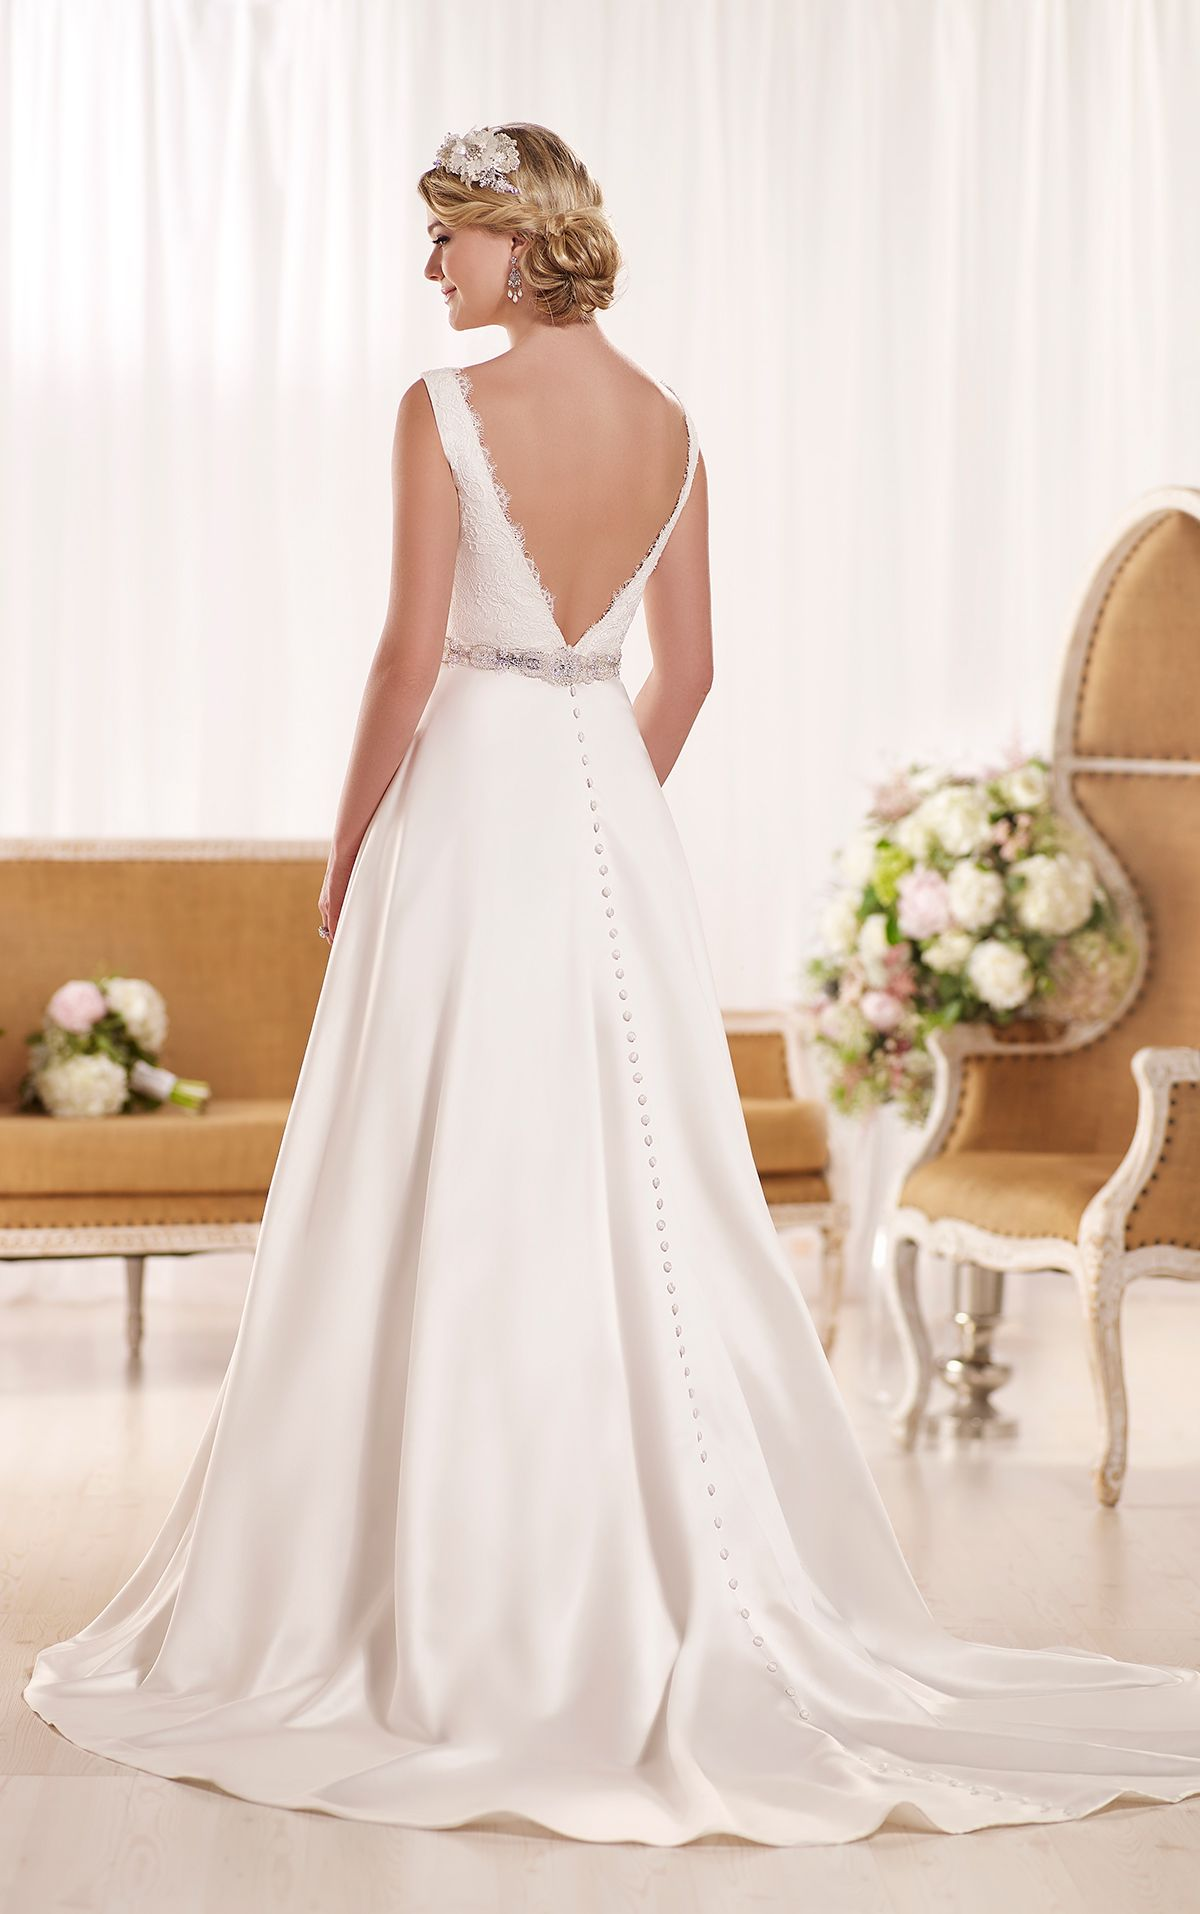 This Luxe Satin and lace Aline designer bridal gown from